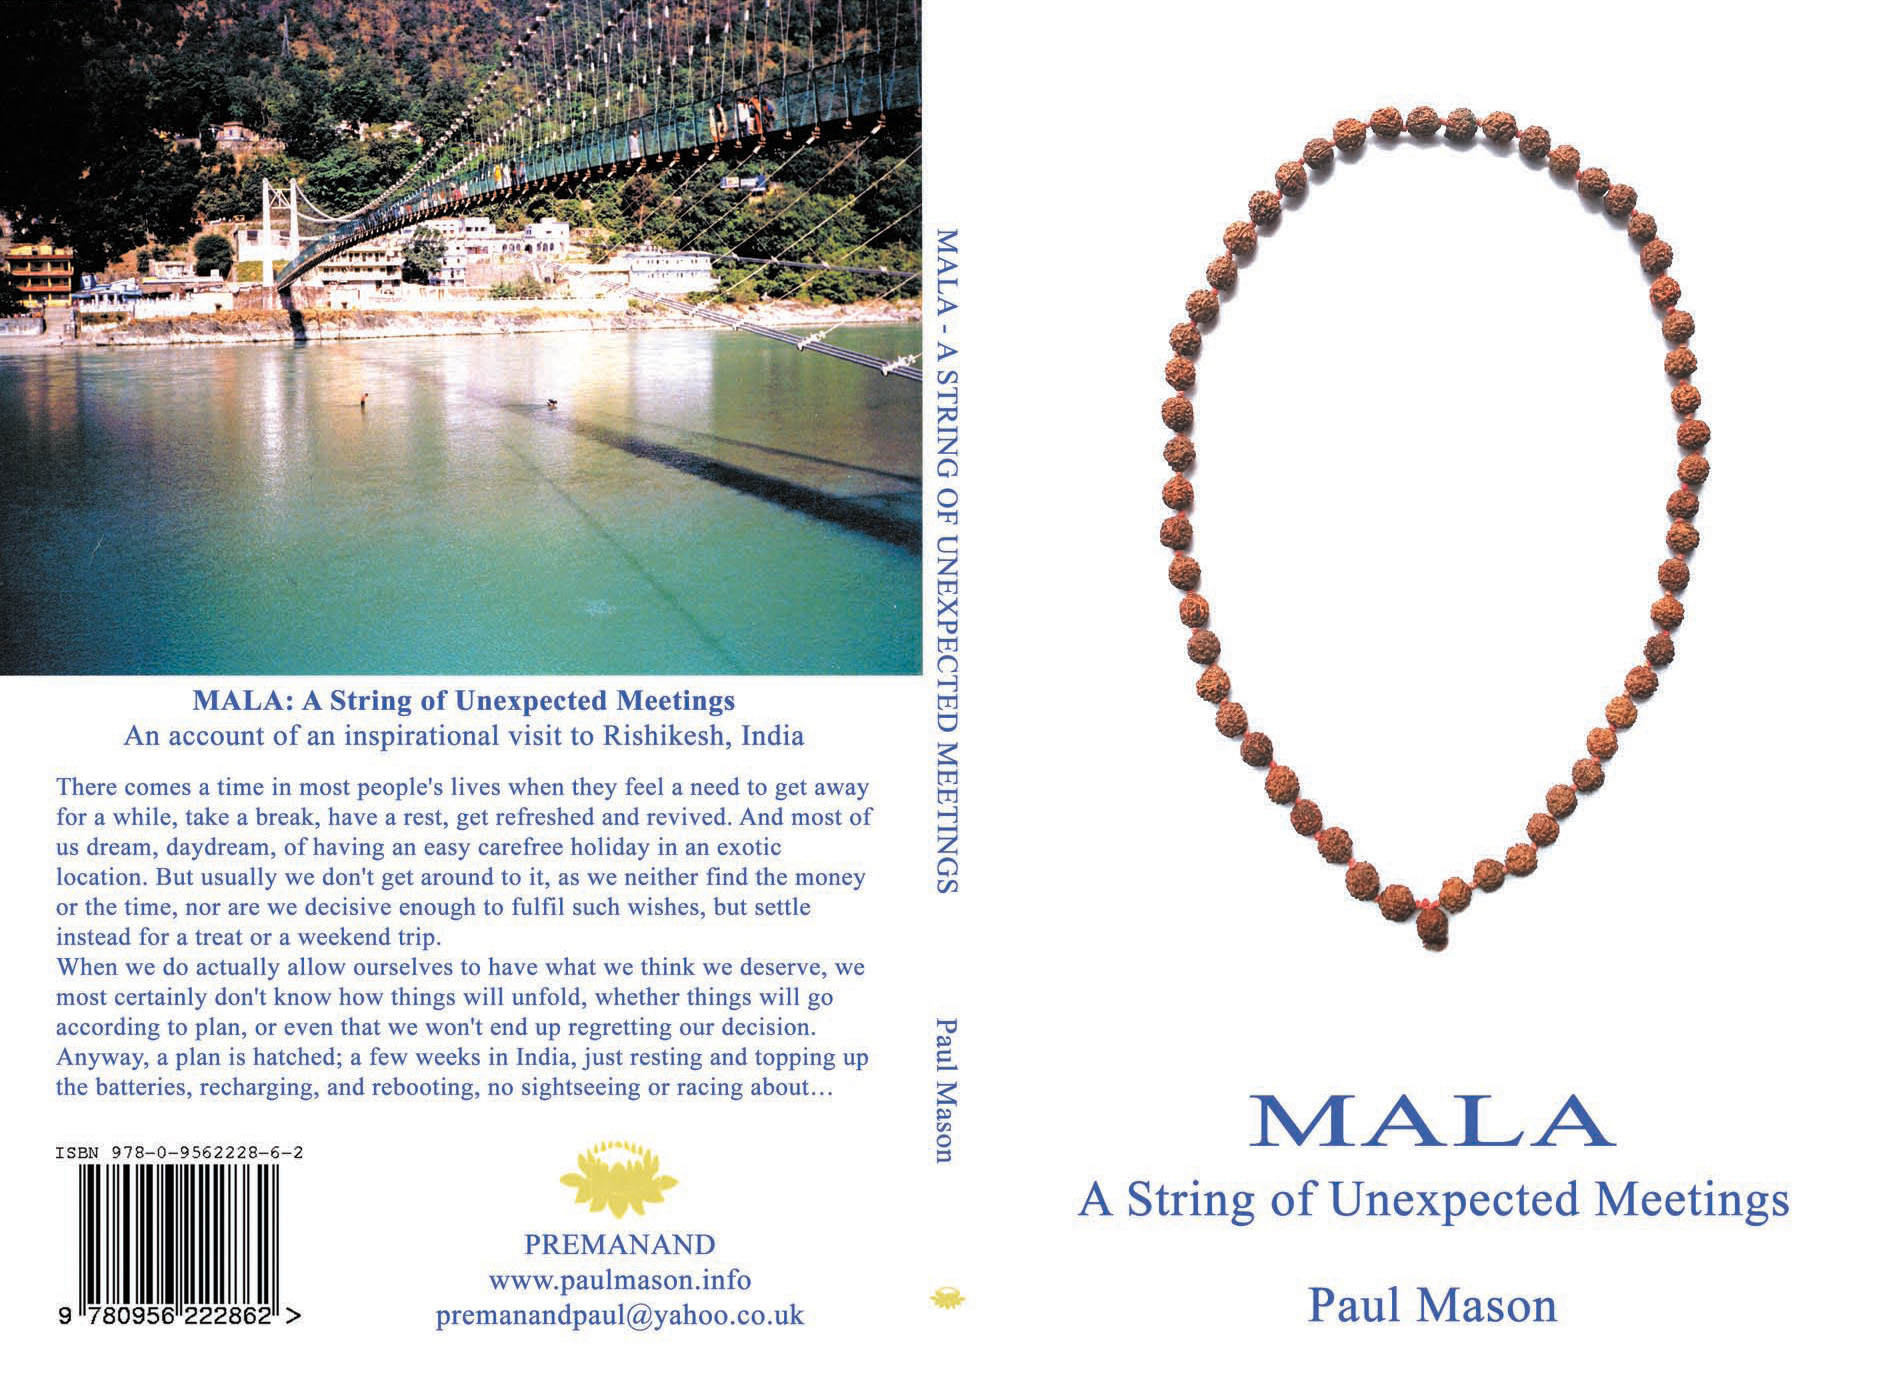 Mala: A String of Unexpected Meetings